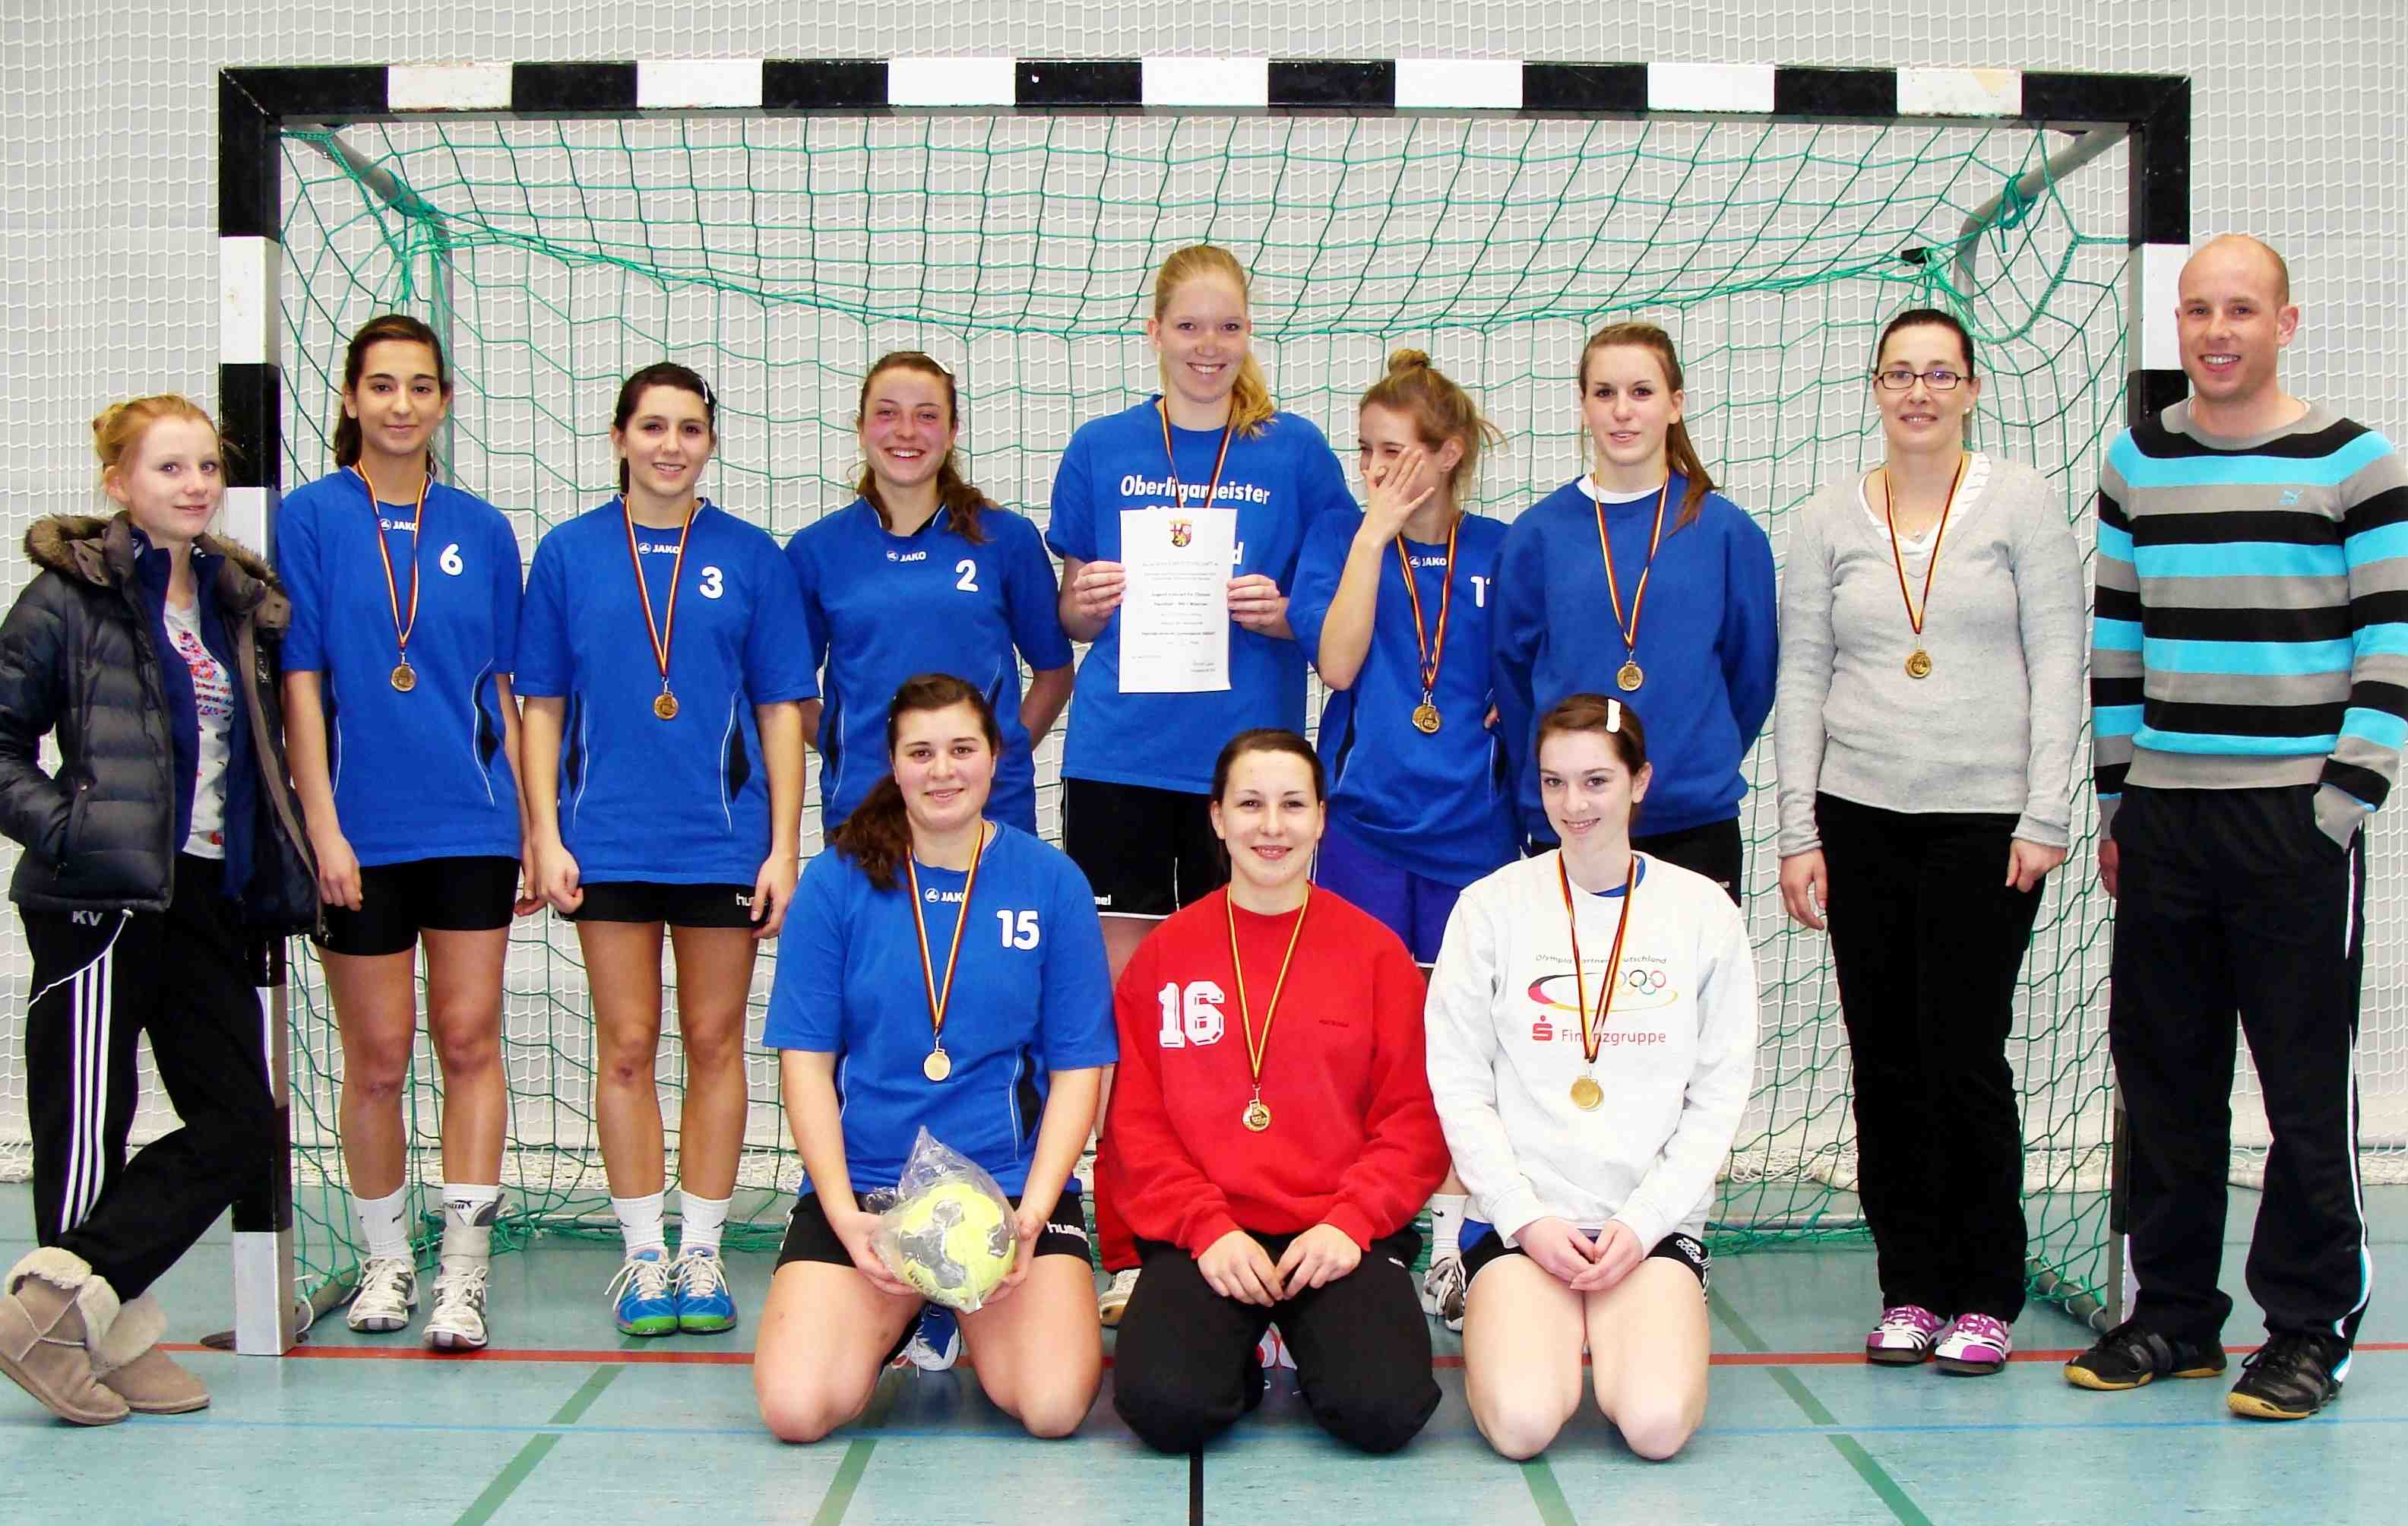 Handball Regionalfinale WK I in Worms am 7. Februar 2012